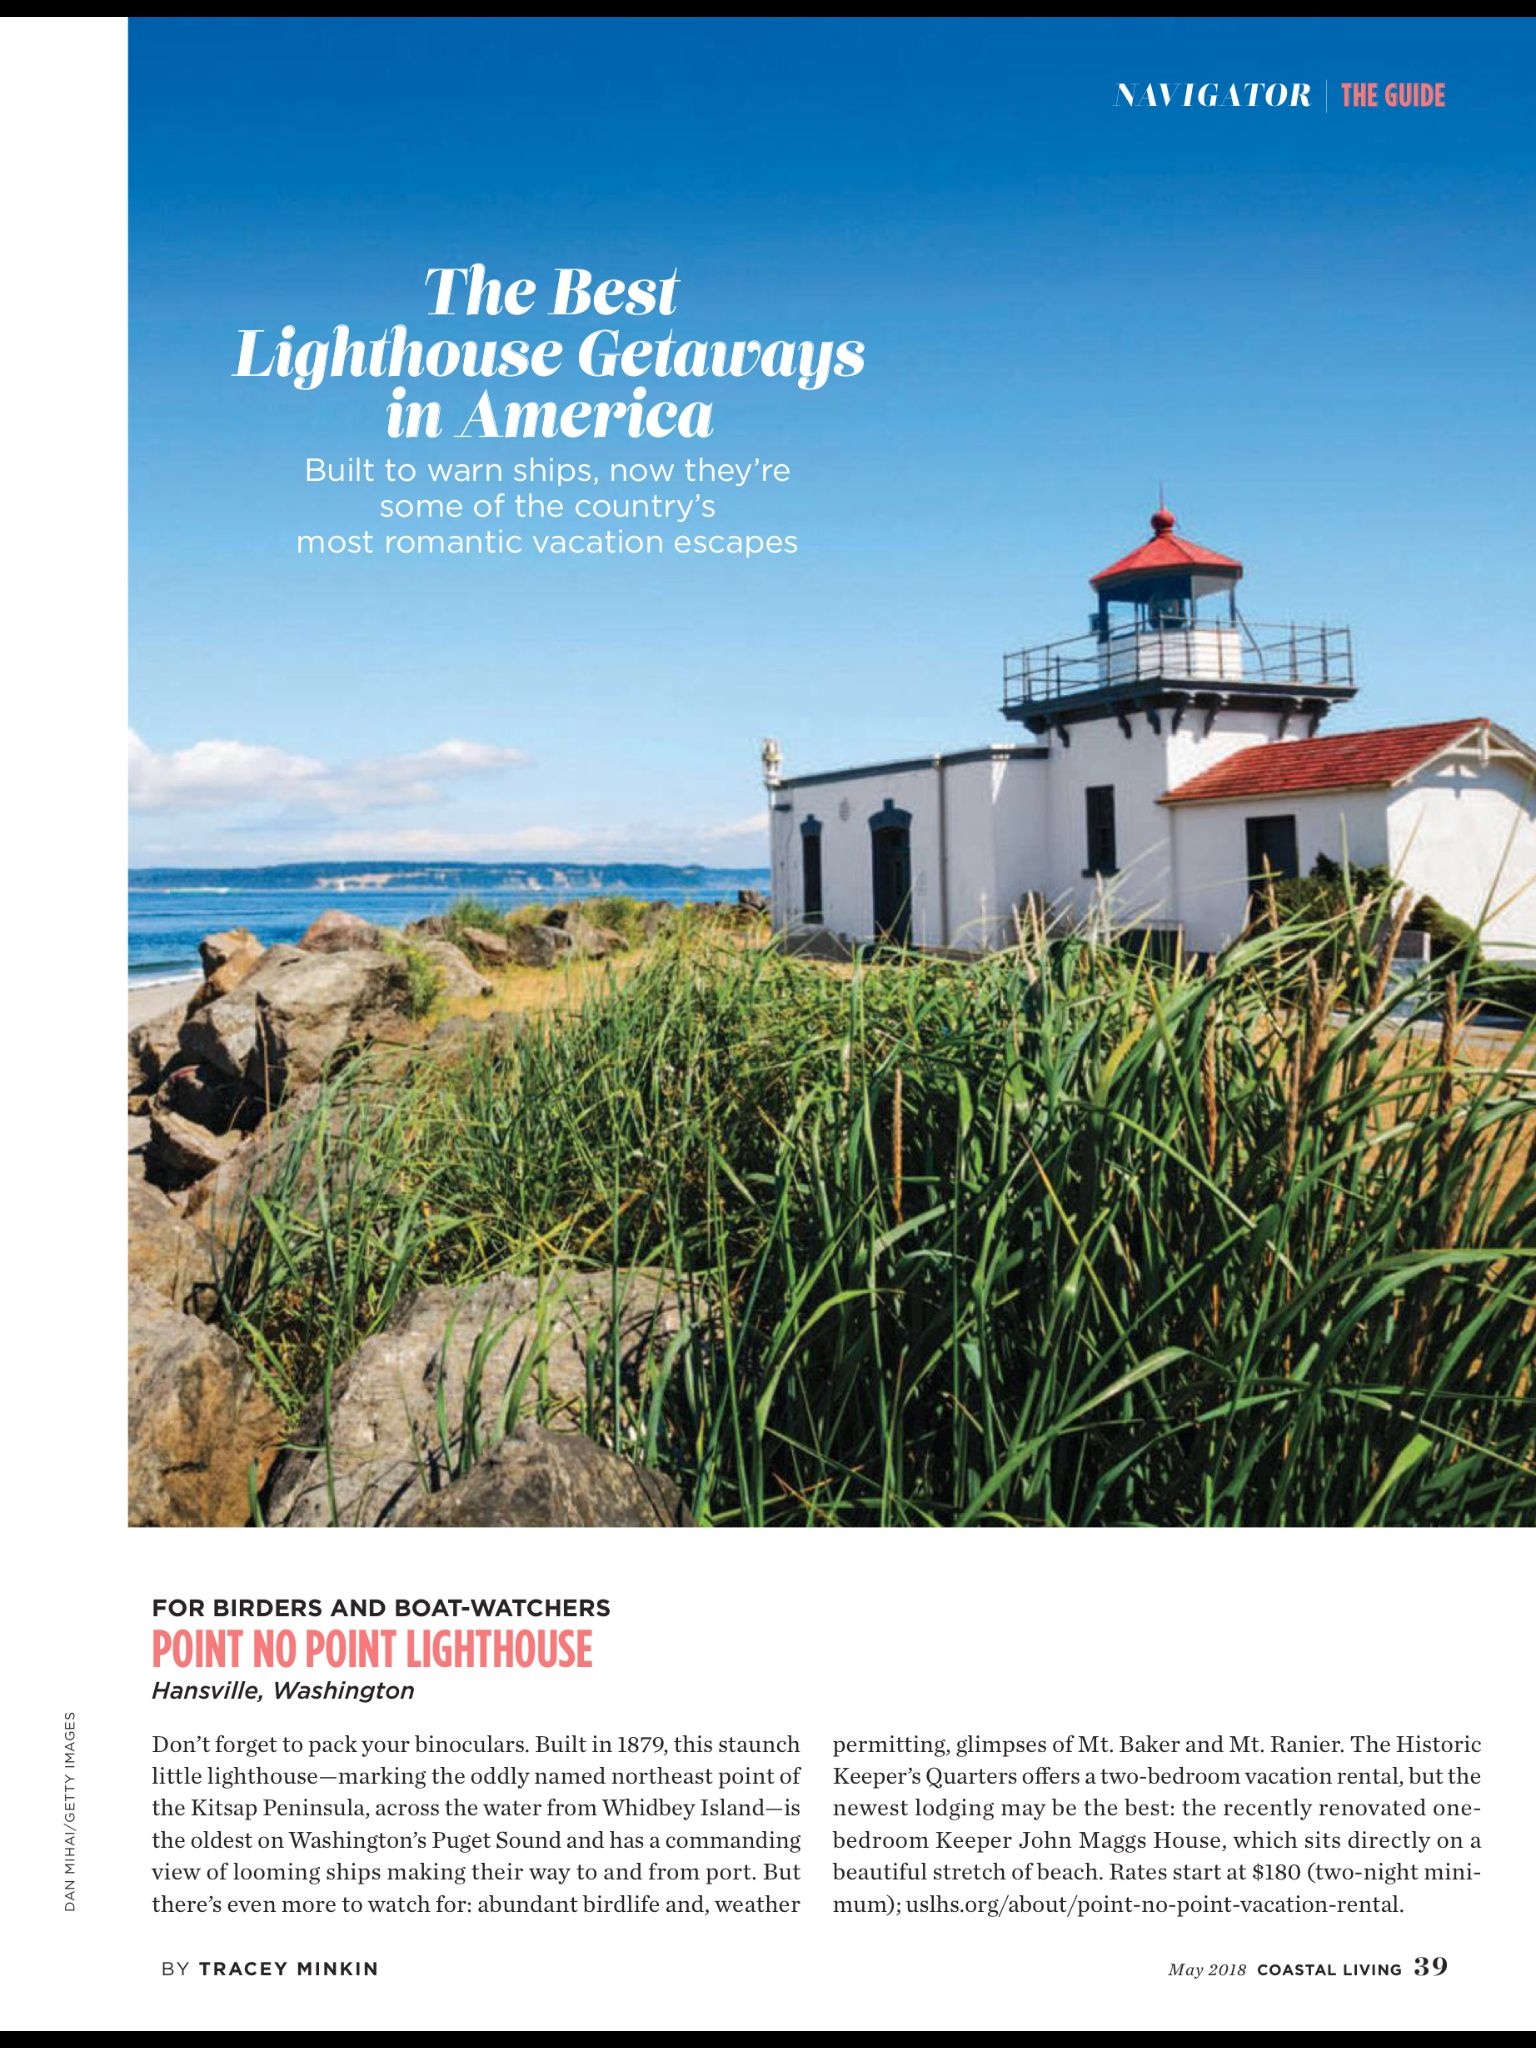 The Best Lighthouse Getaways In America From Coastal Living May 2018 Read It On Texture Unlimited Access To 200 Top Magazines